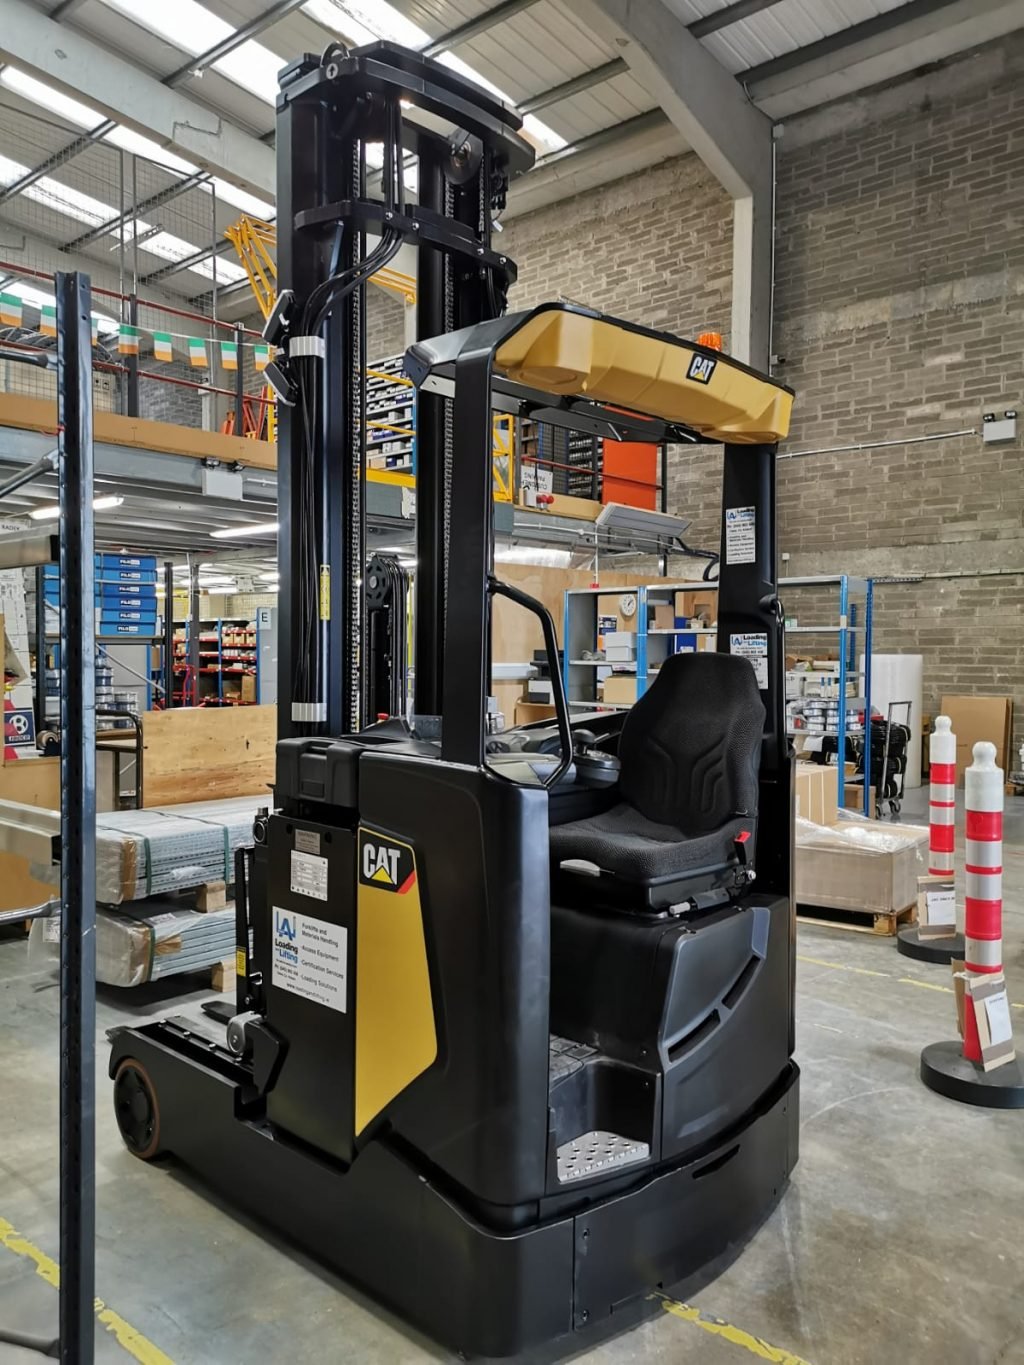 CAT reach truck in warehouse